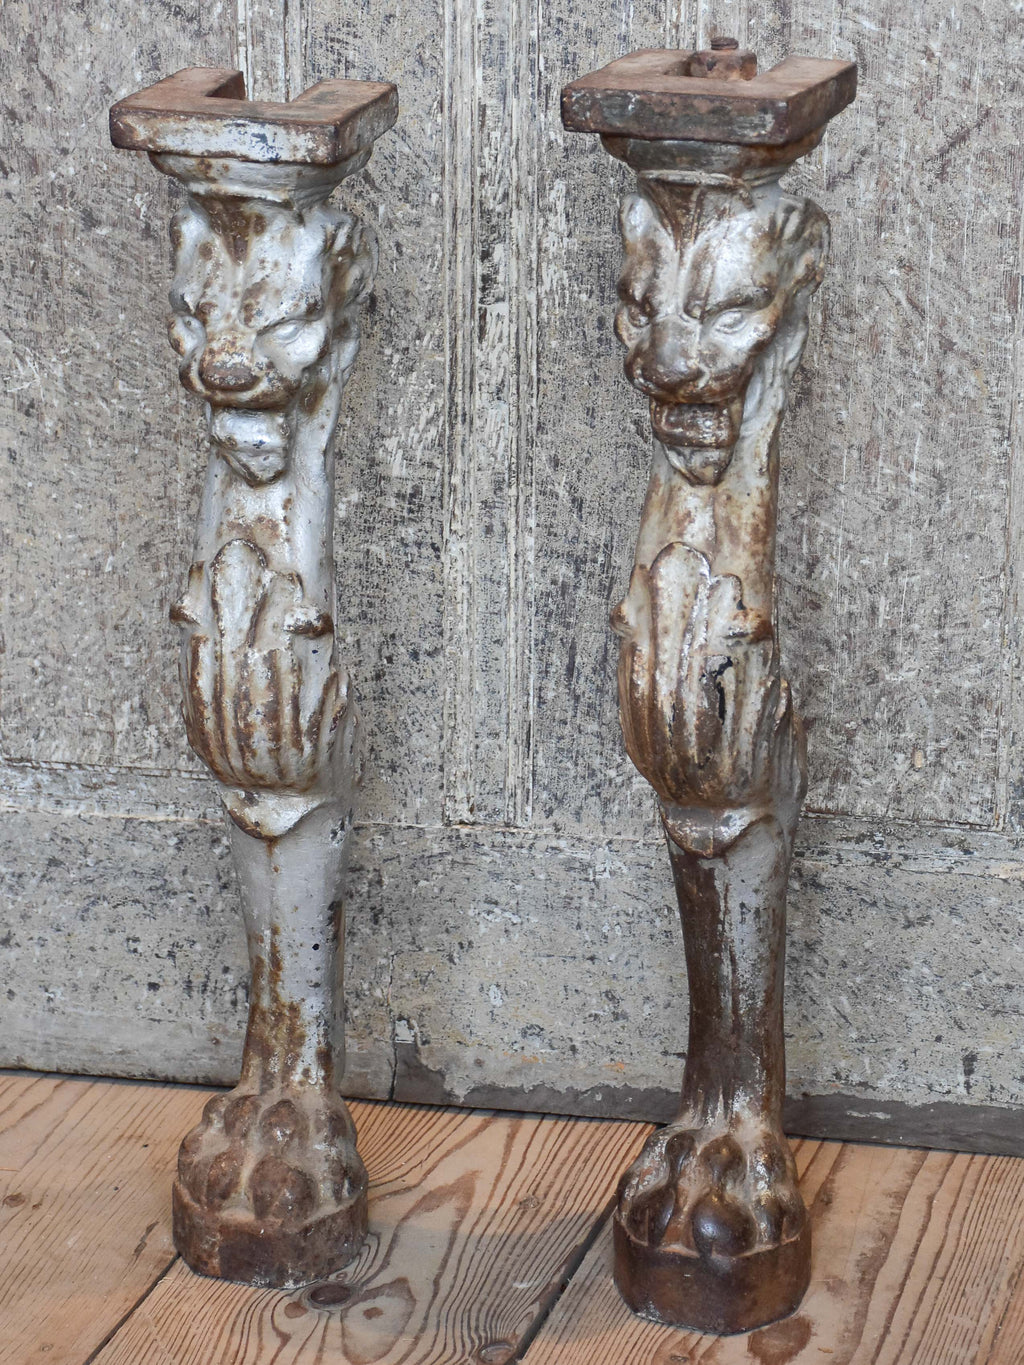 Two console table legs with lion heads and claw feet